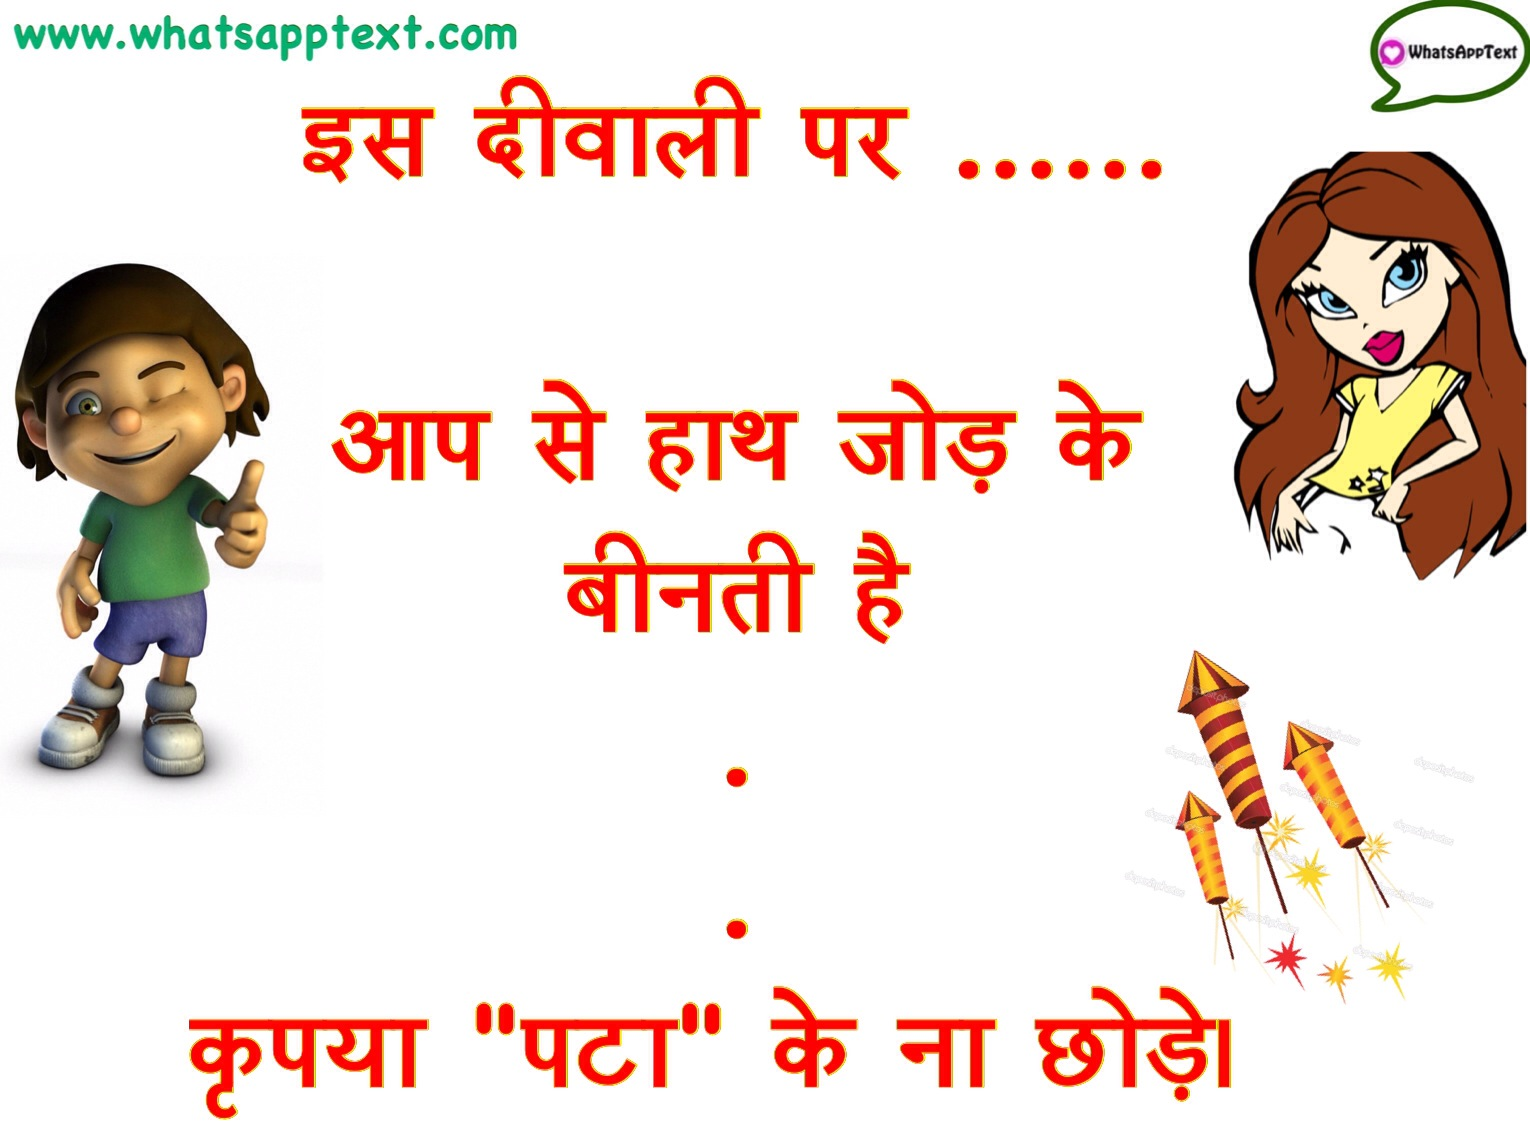 Diwali jokes boys vs girls special breakup special whatsapp best funny sms messages for diwali m4hsunfo